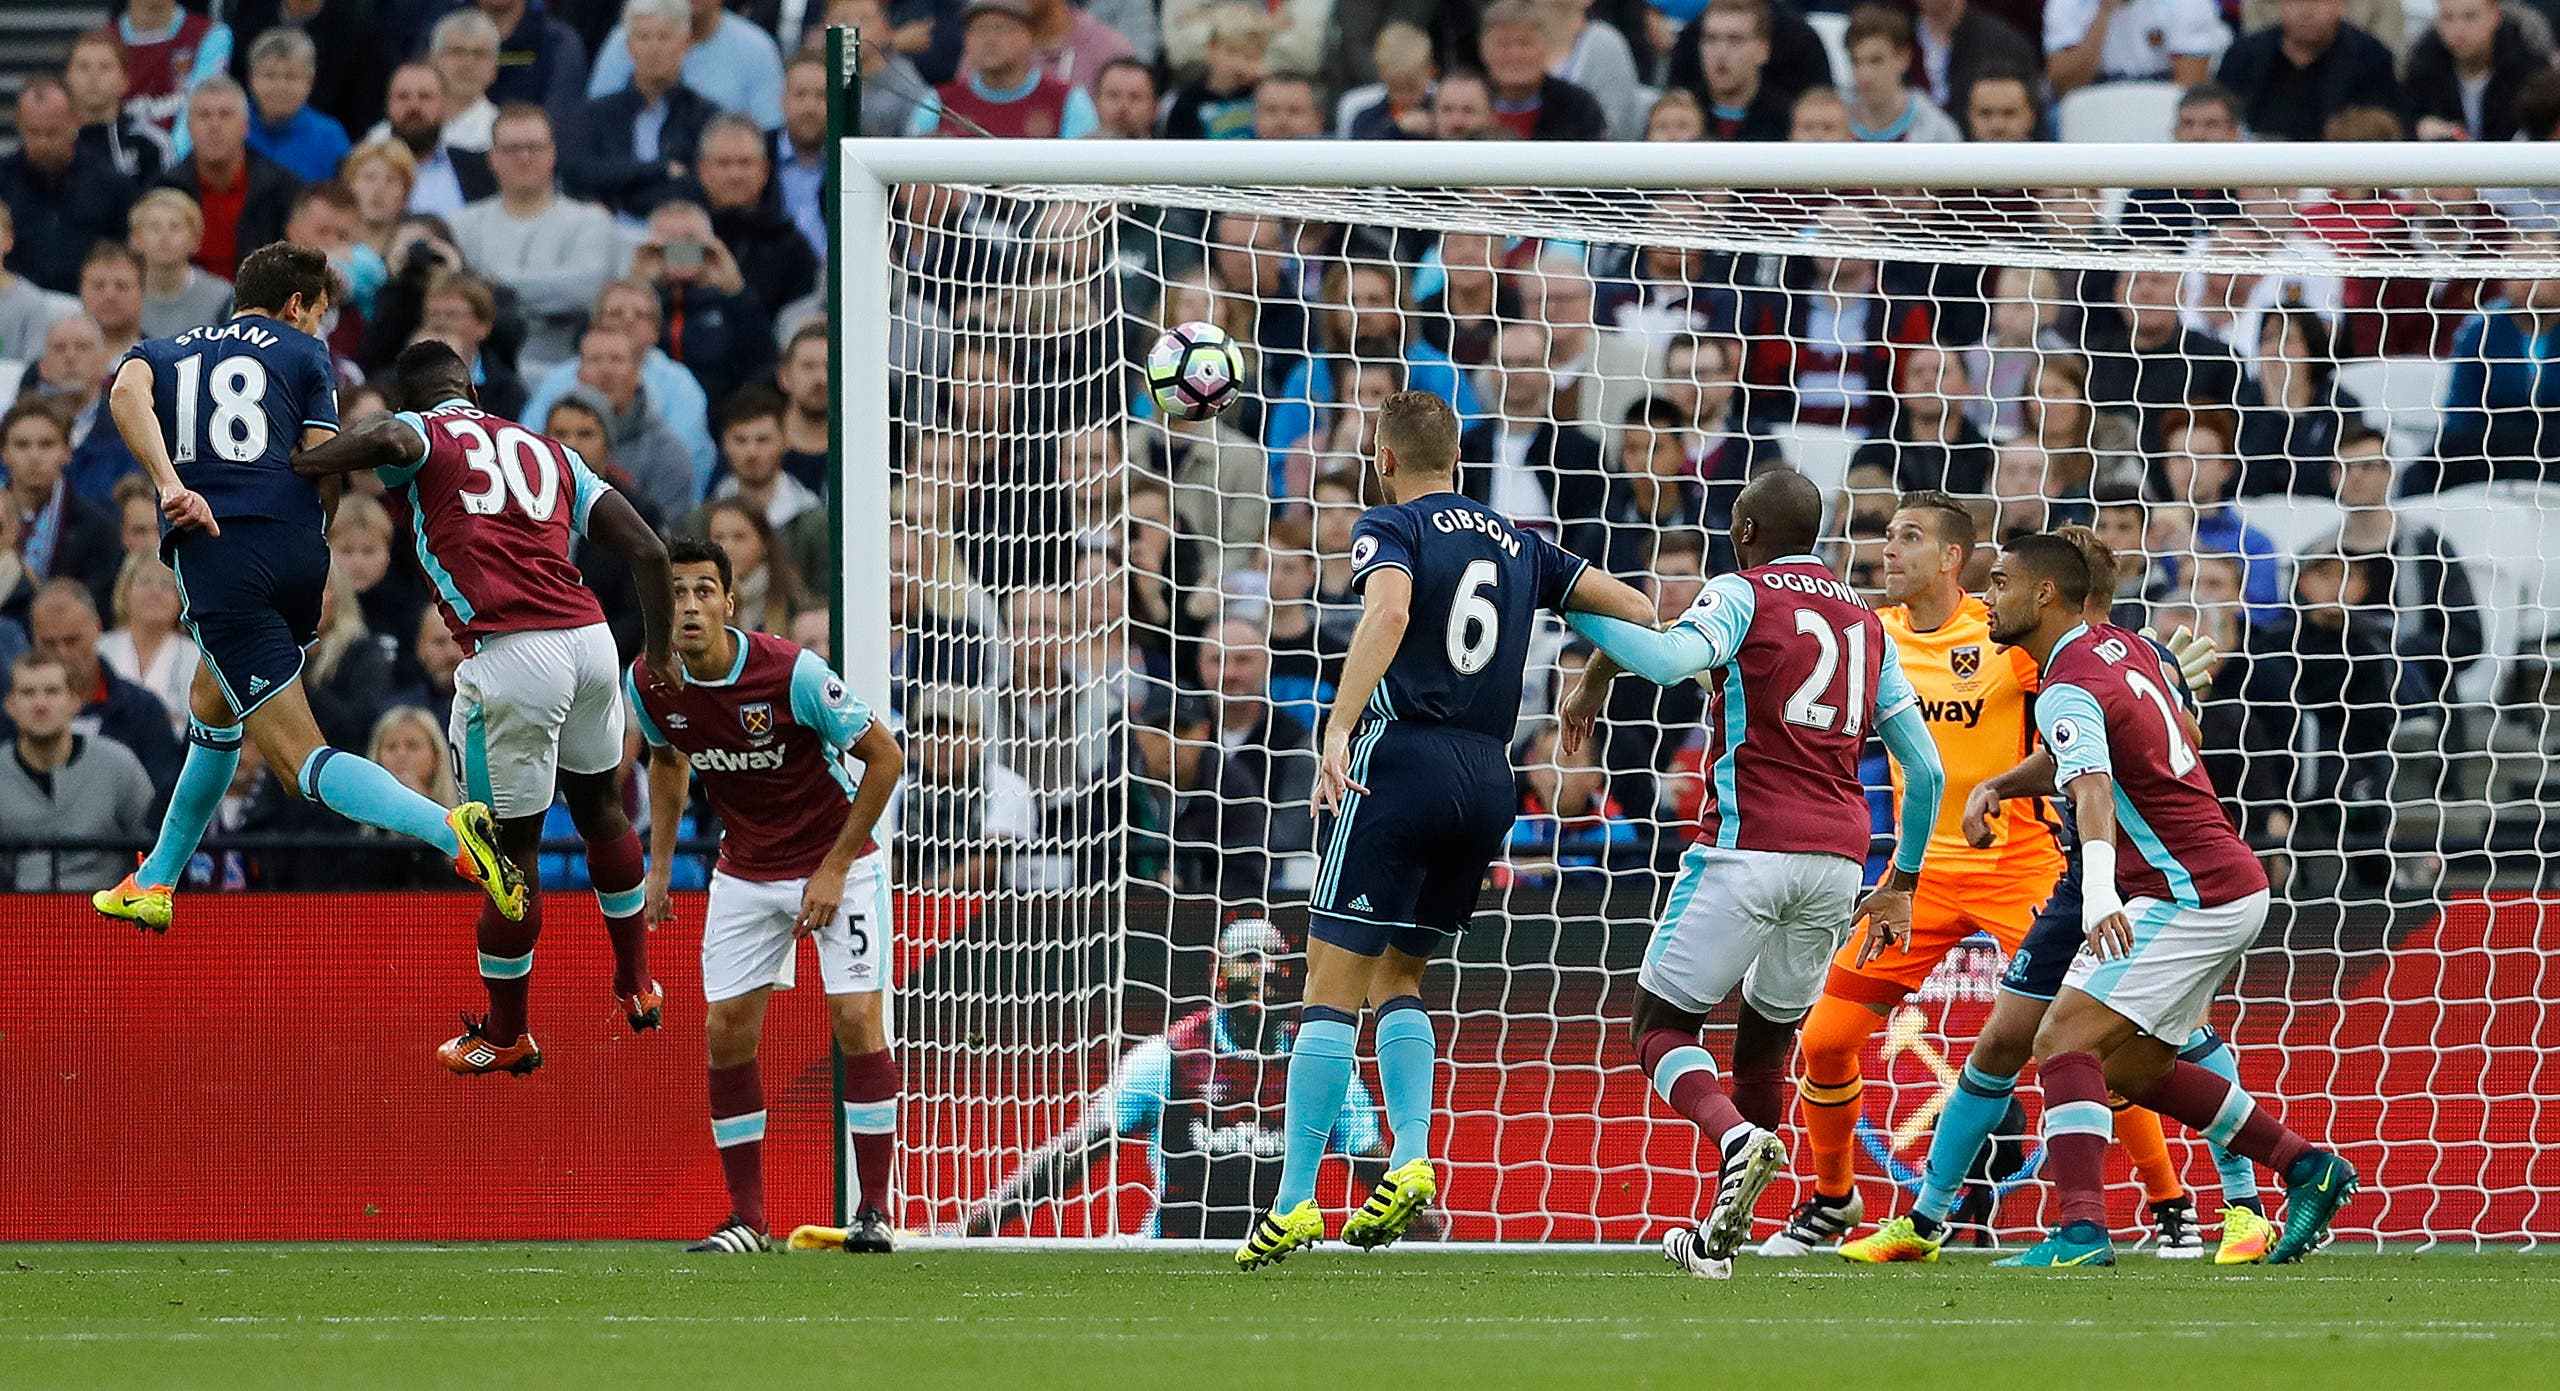 Middlesbrough's Cristhian Stuani, left, heads to score during the English Premier League soccer match between West Ham and Middlesbrough at The London Stadium in London, Saturday, Oct. 1, 2016. (AP)